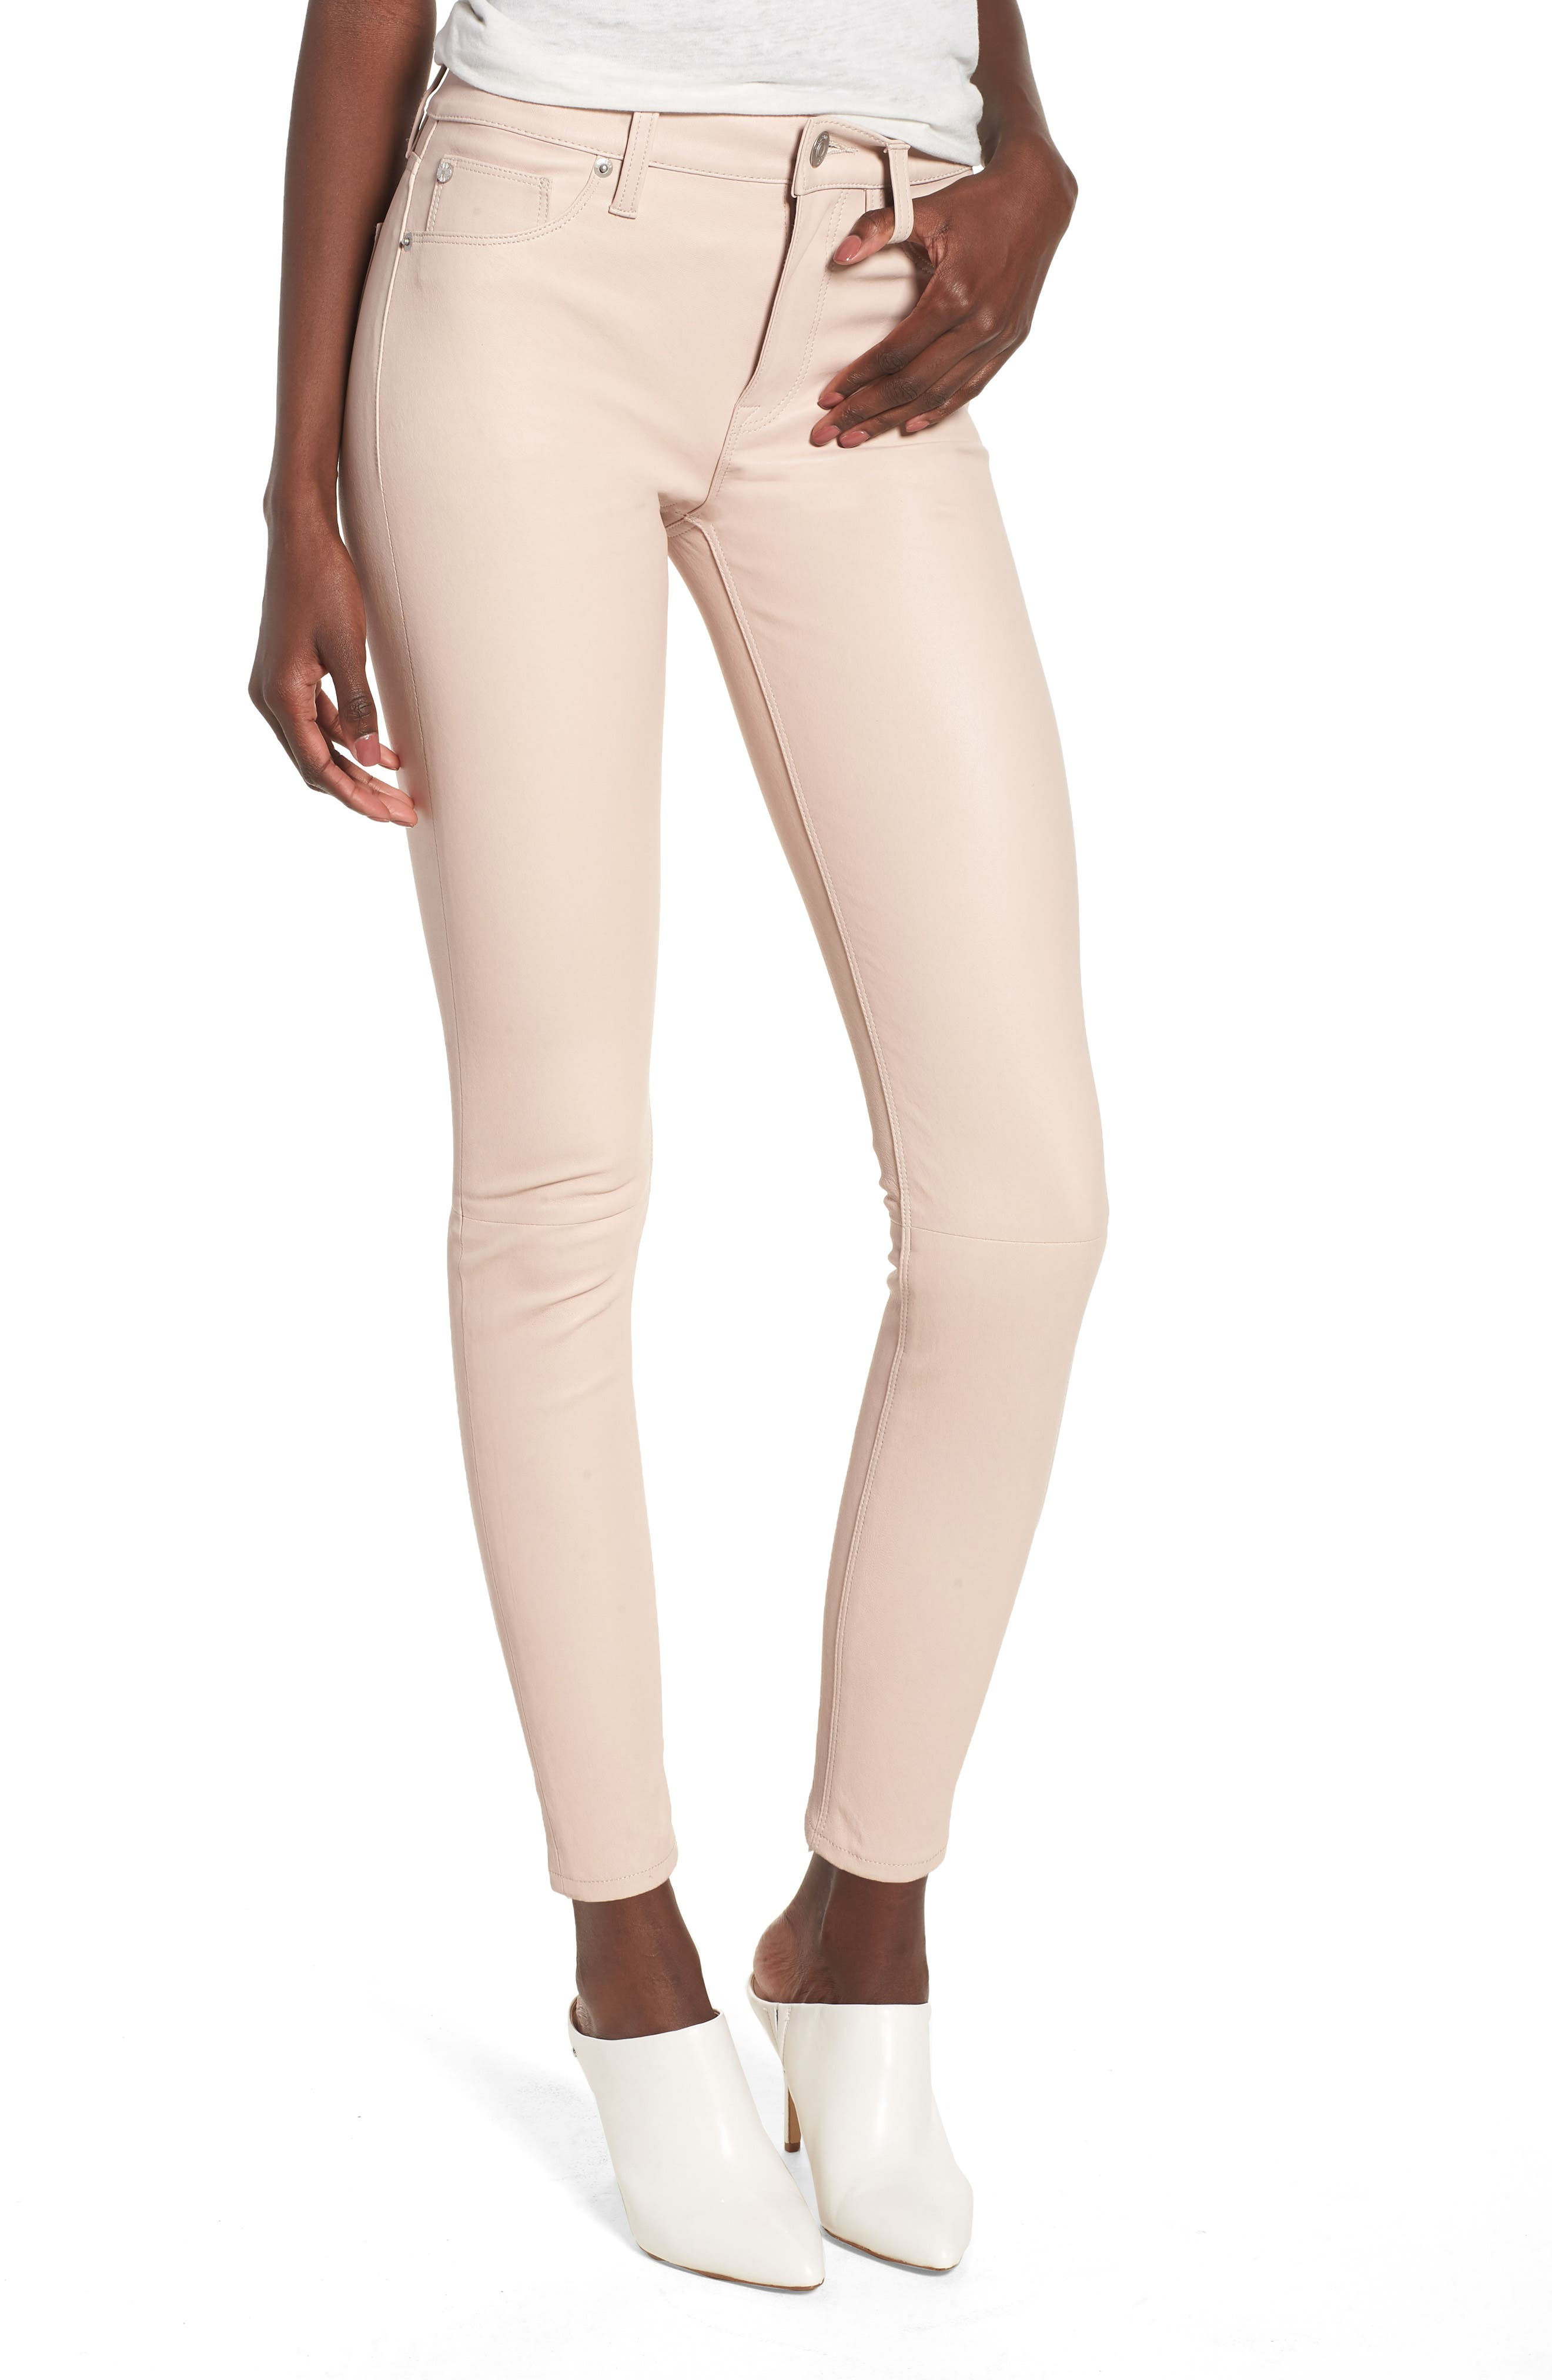 Barbara High Waist Ankle Skinny Leather Jeans,                             Main thumbnail 1, color,                             Blushing